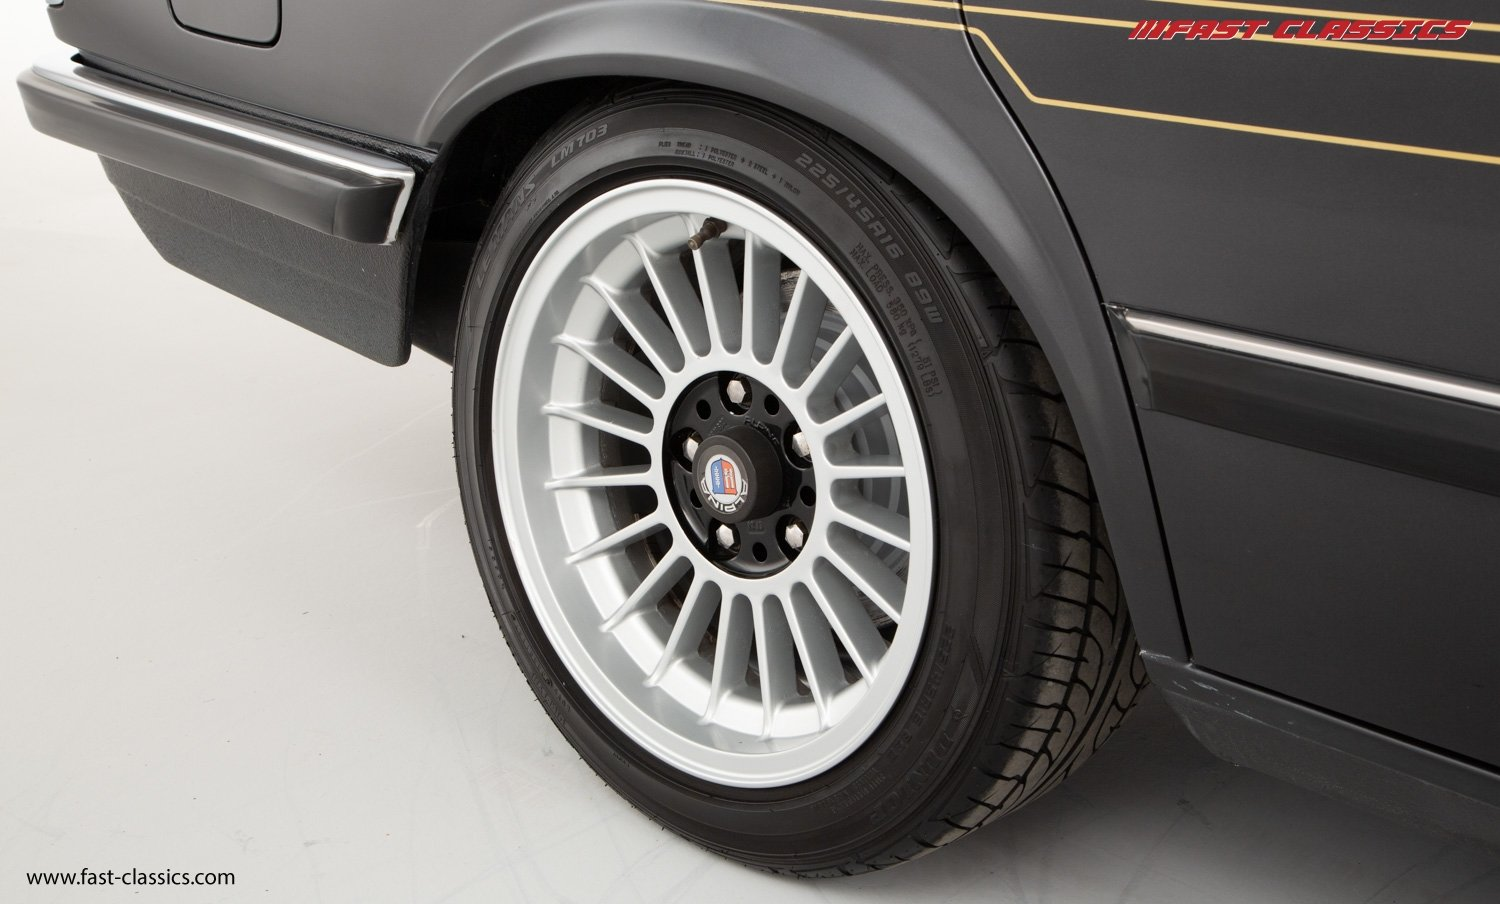 1986 ALPINA B7 TURBO/1 // 1 OF 42 HIGH POWER CATALYST CARS  For Sale (picture 24 of 24)